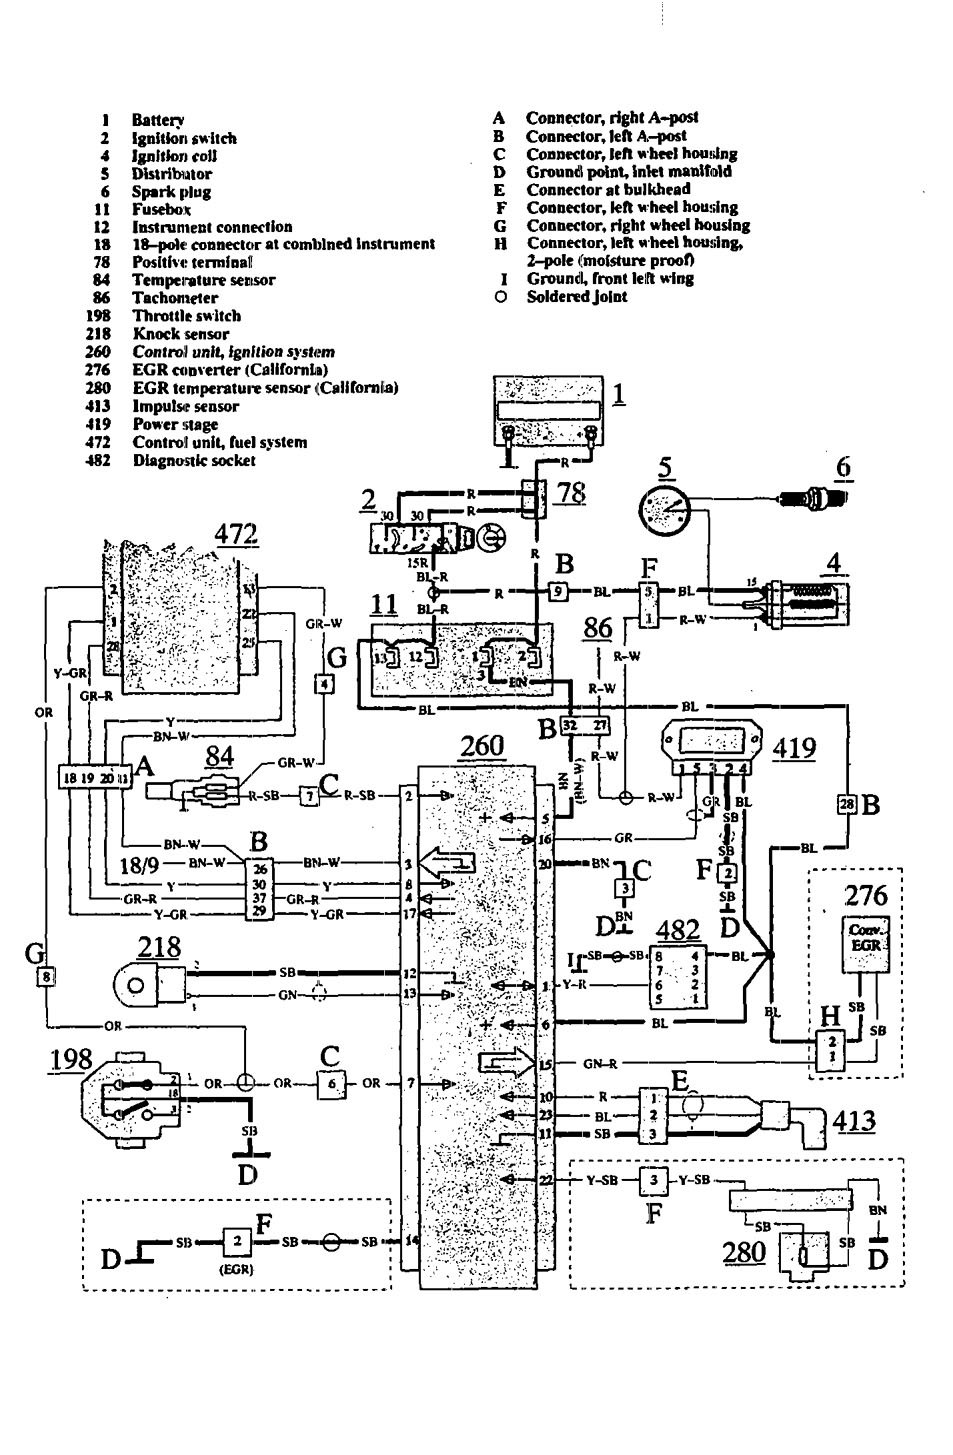 Volvo 940 Ignition Wiring Diagram Electrical Diagrams Fl10 1991 Carknowledge Jaguar Xk8